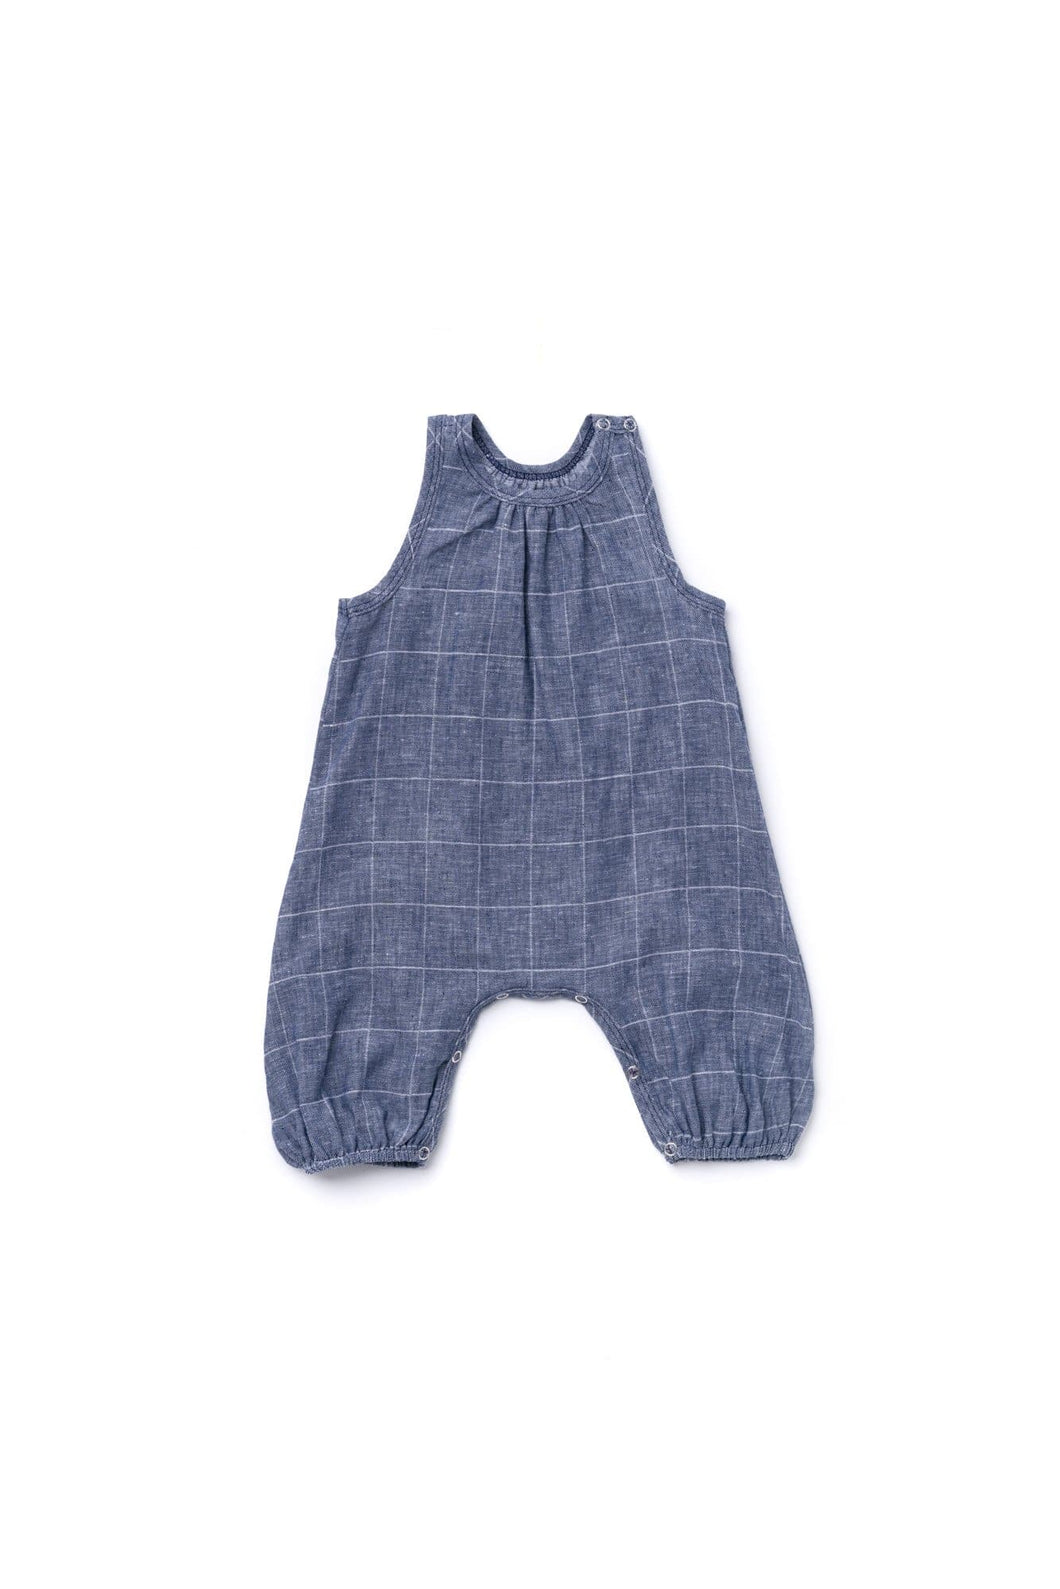 OMAMImini Windowpane Racerback Playsuit - Indigo - WildLittleFawns